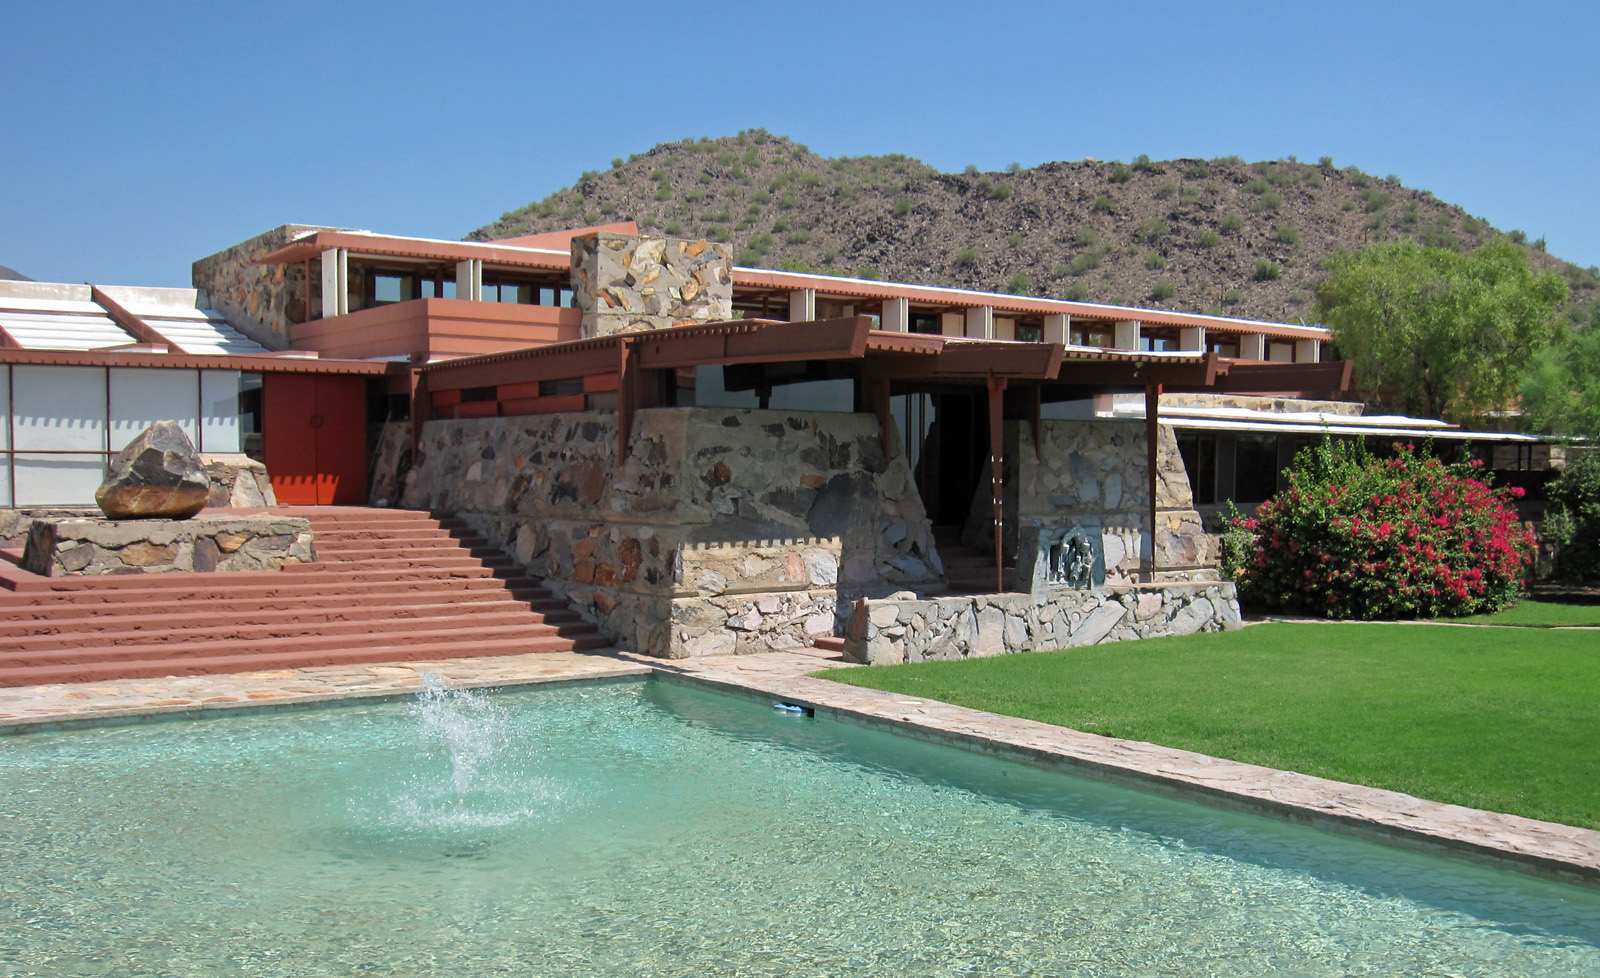 Taliesin West is a National Historic Landmark built